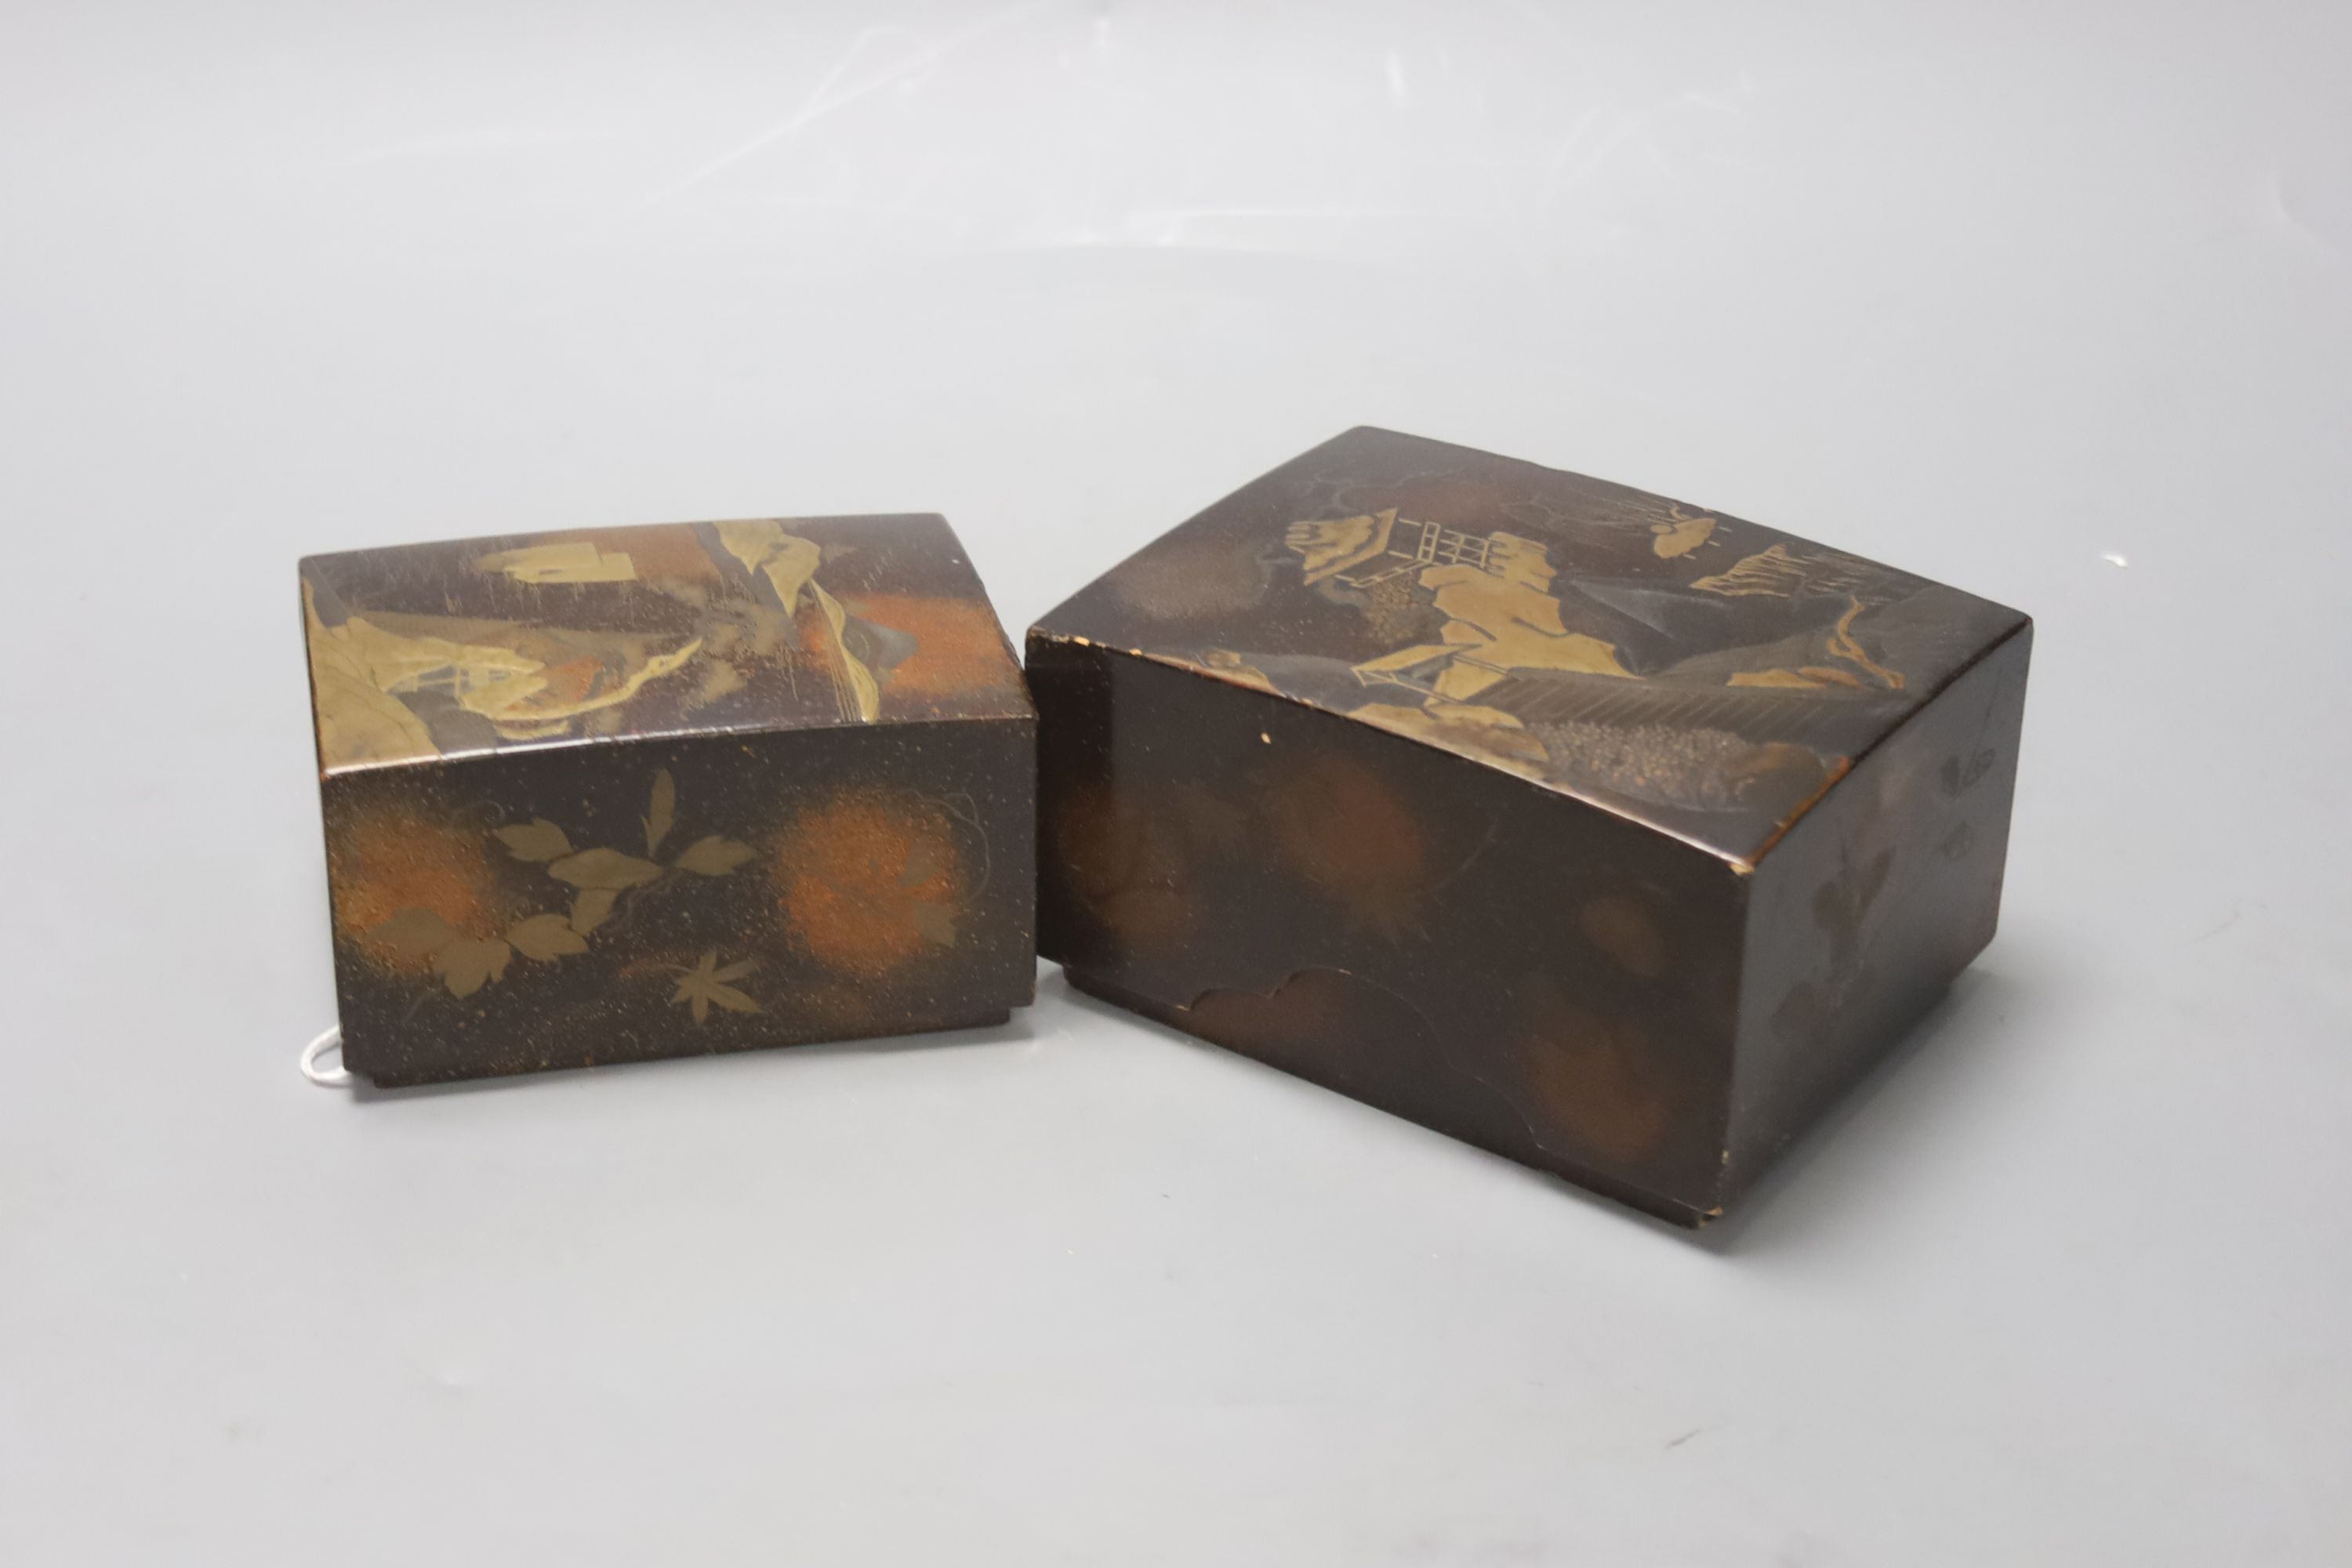 Two Japanese lacquer boxes, 19th century, largest 13.5cm - Image 2 of 4